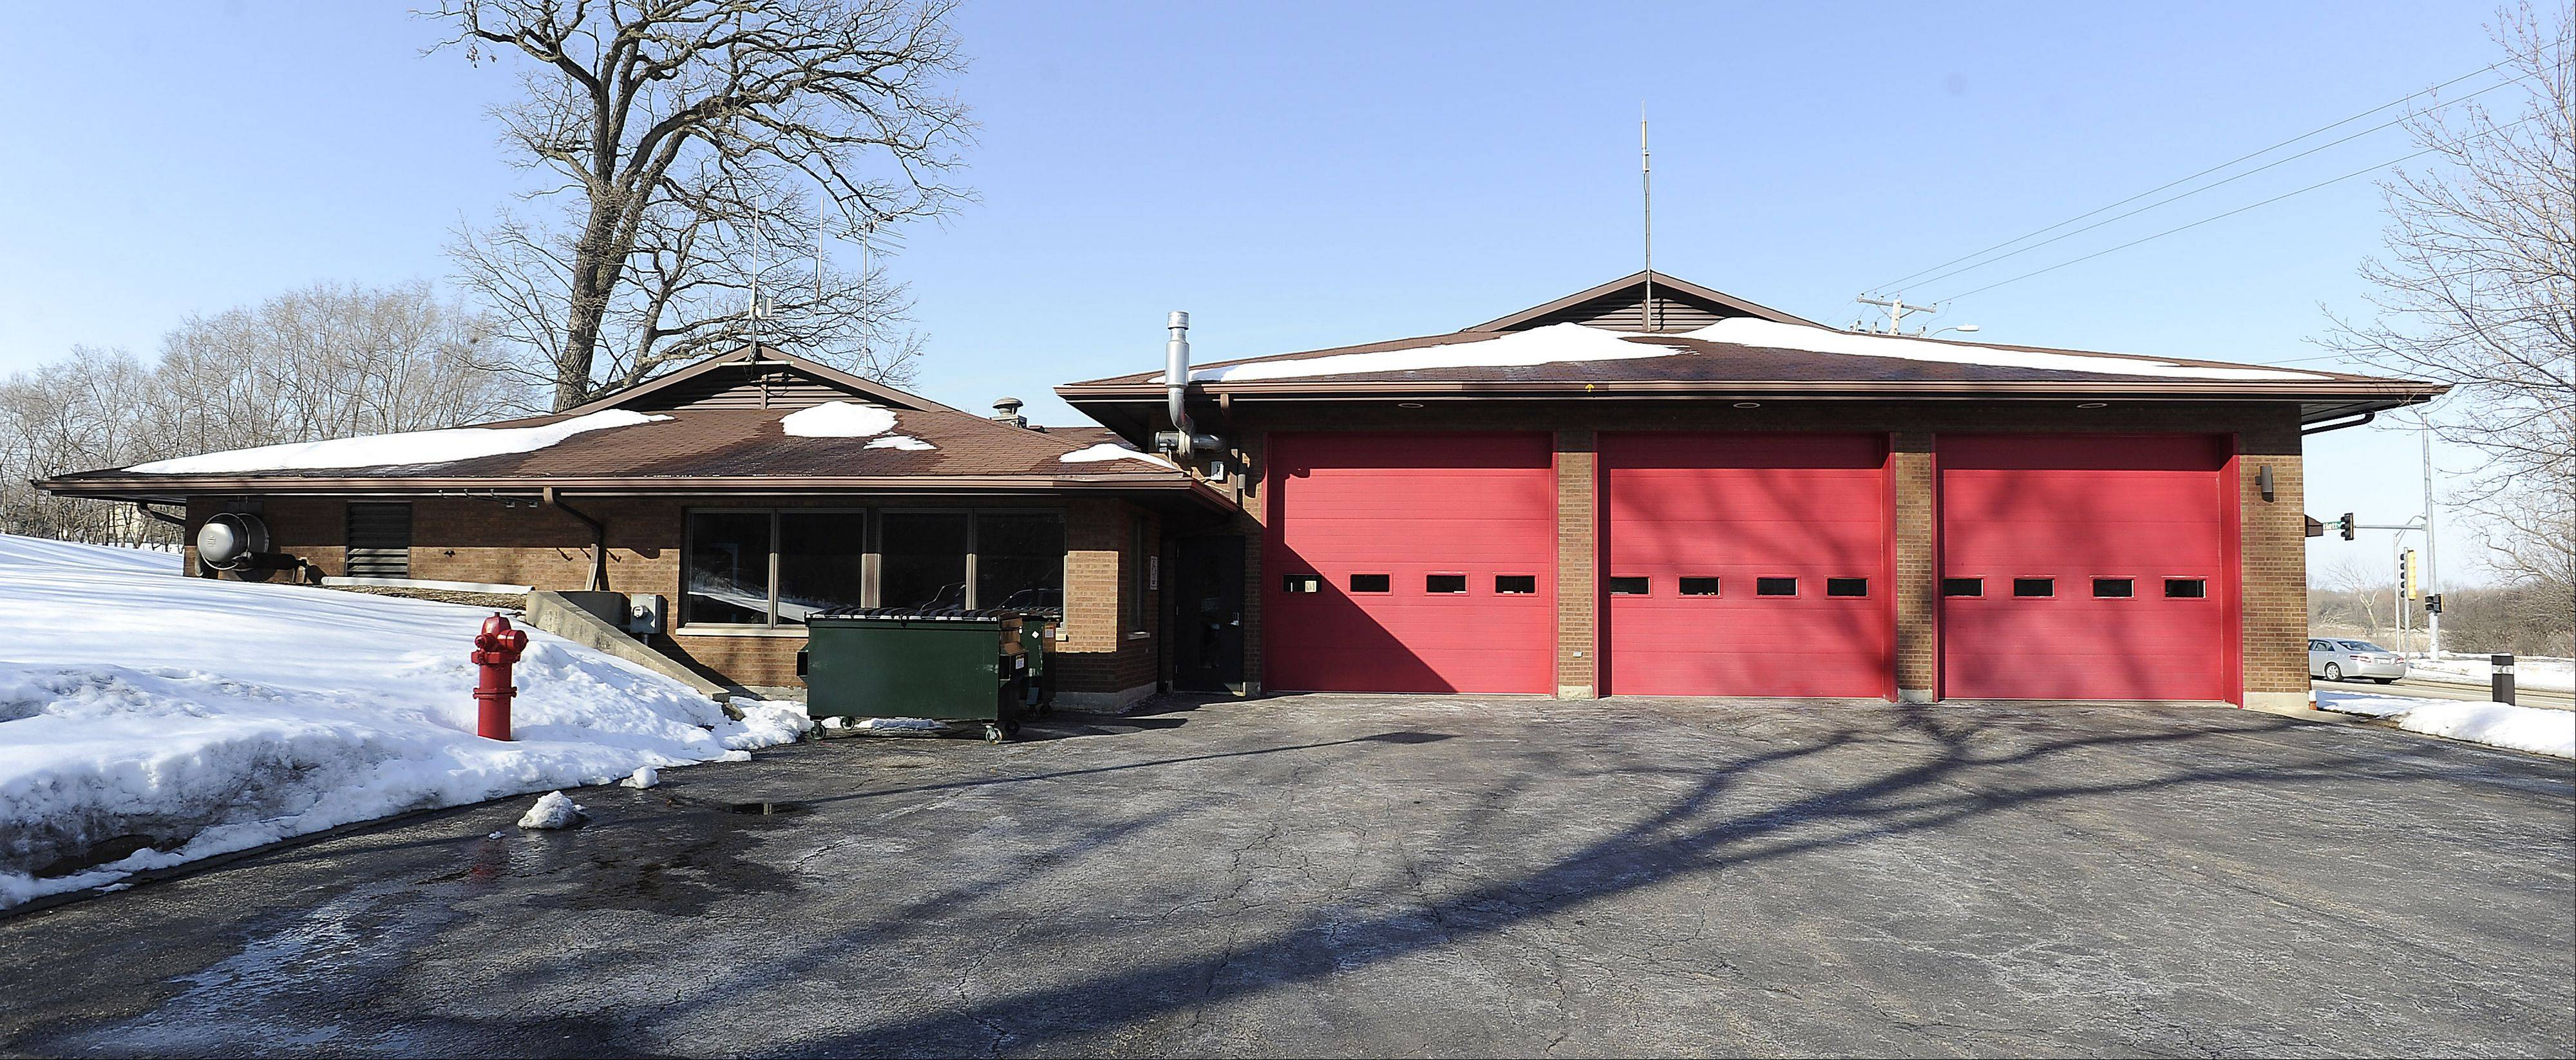 This is the south side of Bartlett Fire Protection District Station 2.